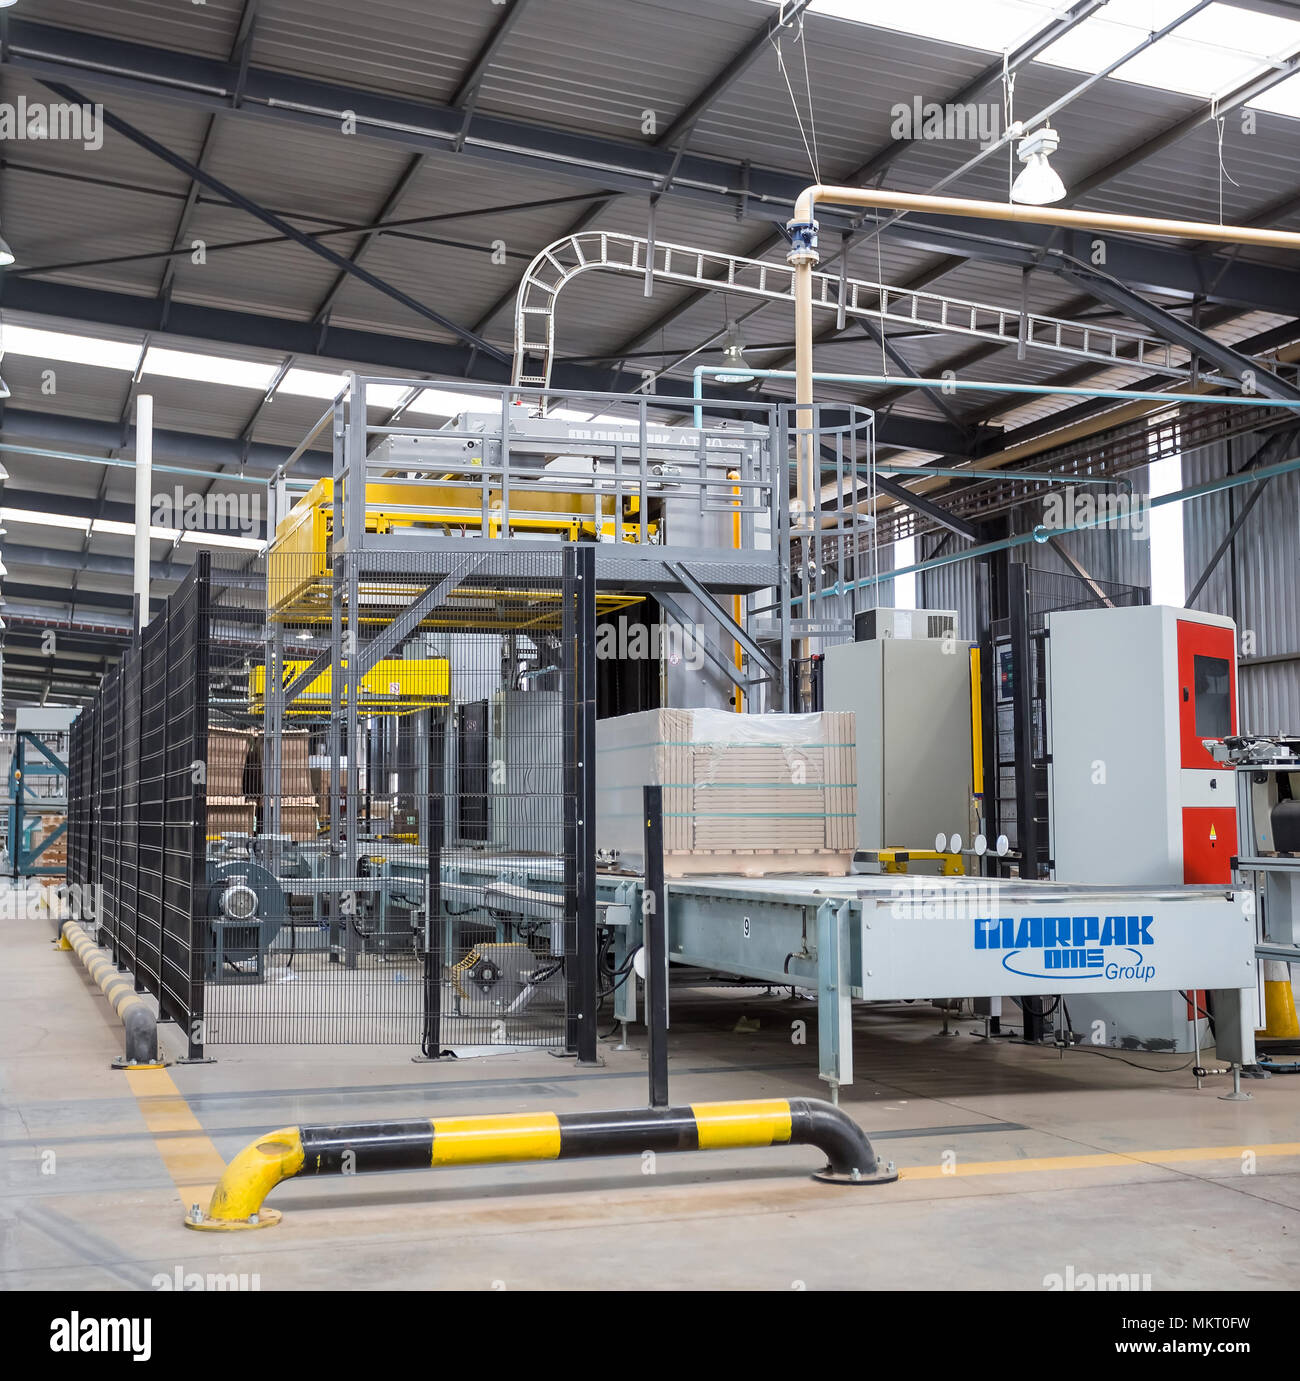 Cape town south africa ceramics stock photos cape town south cape town south africa june 29 2018 ceramic tile manufacturing plant dailygadgetfo Gallery